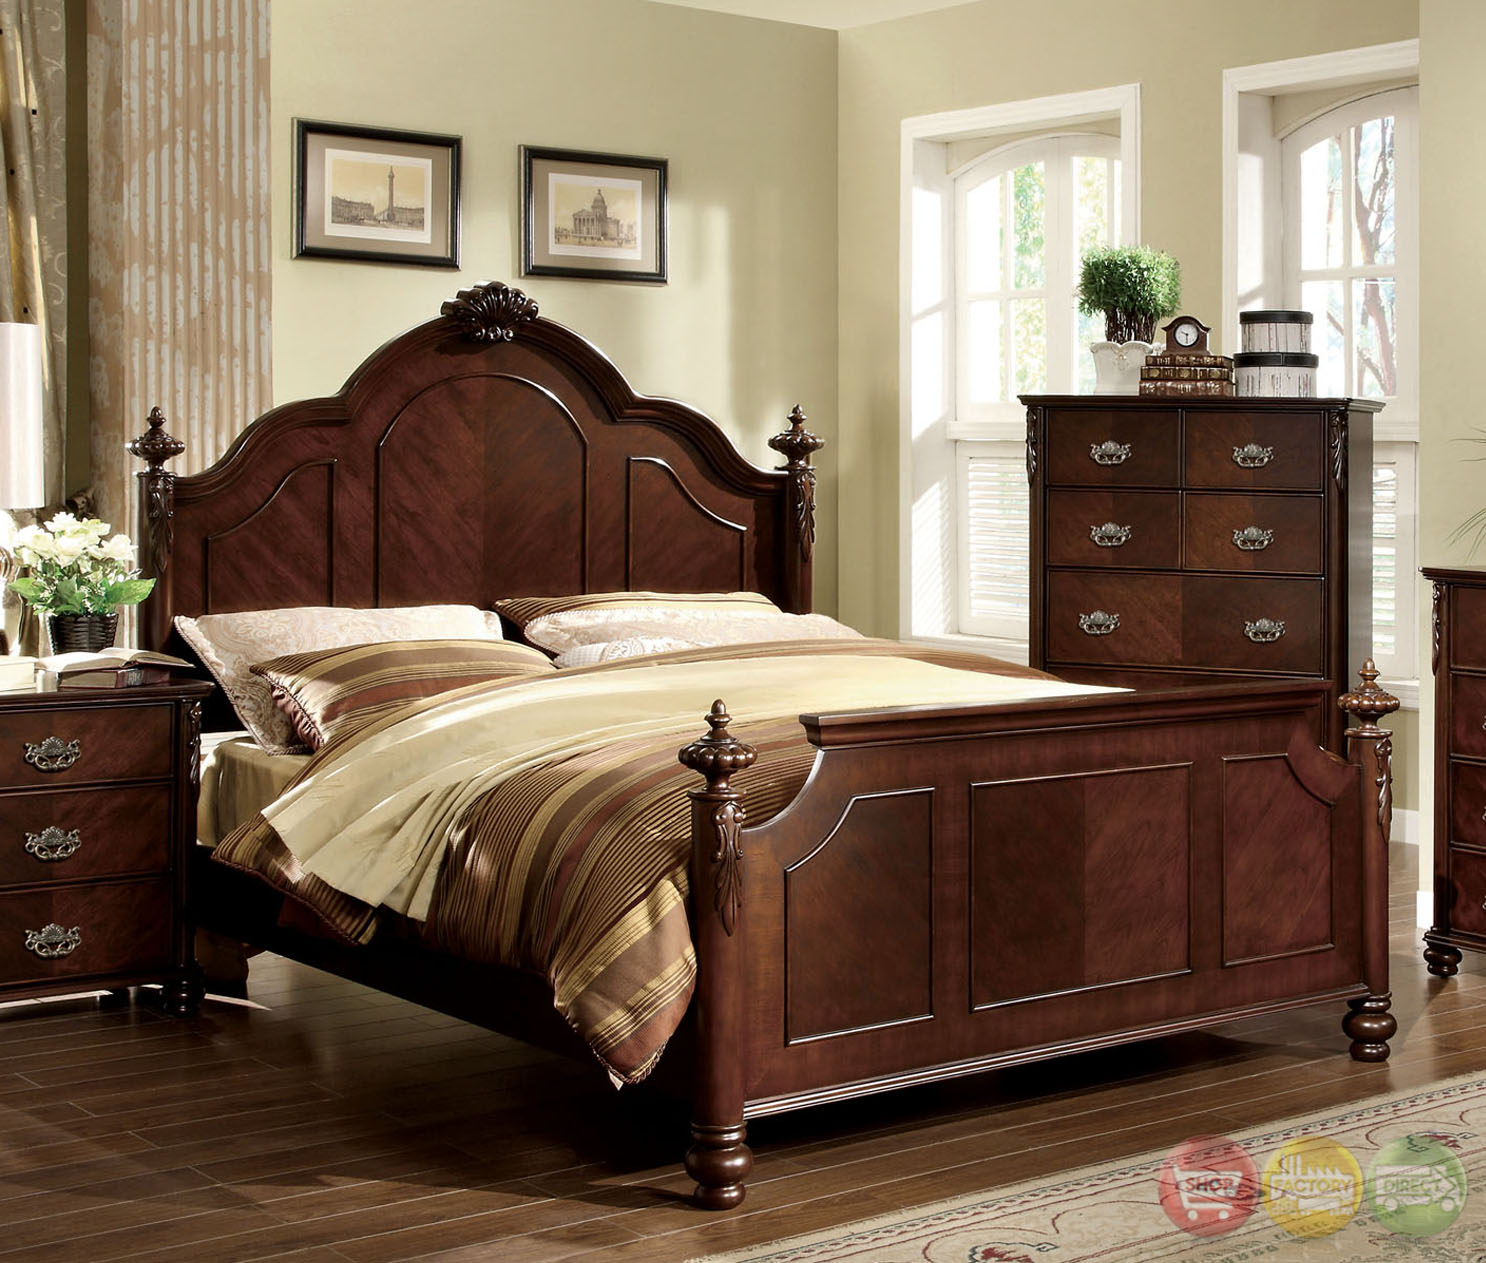 Traditional Bedroom Pictures: Roseland Traditional Brown Cherry Bedroom Set With